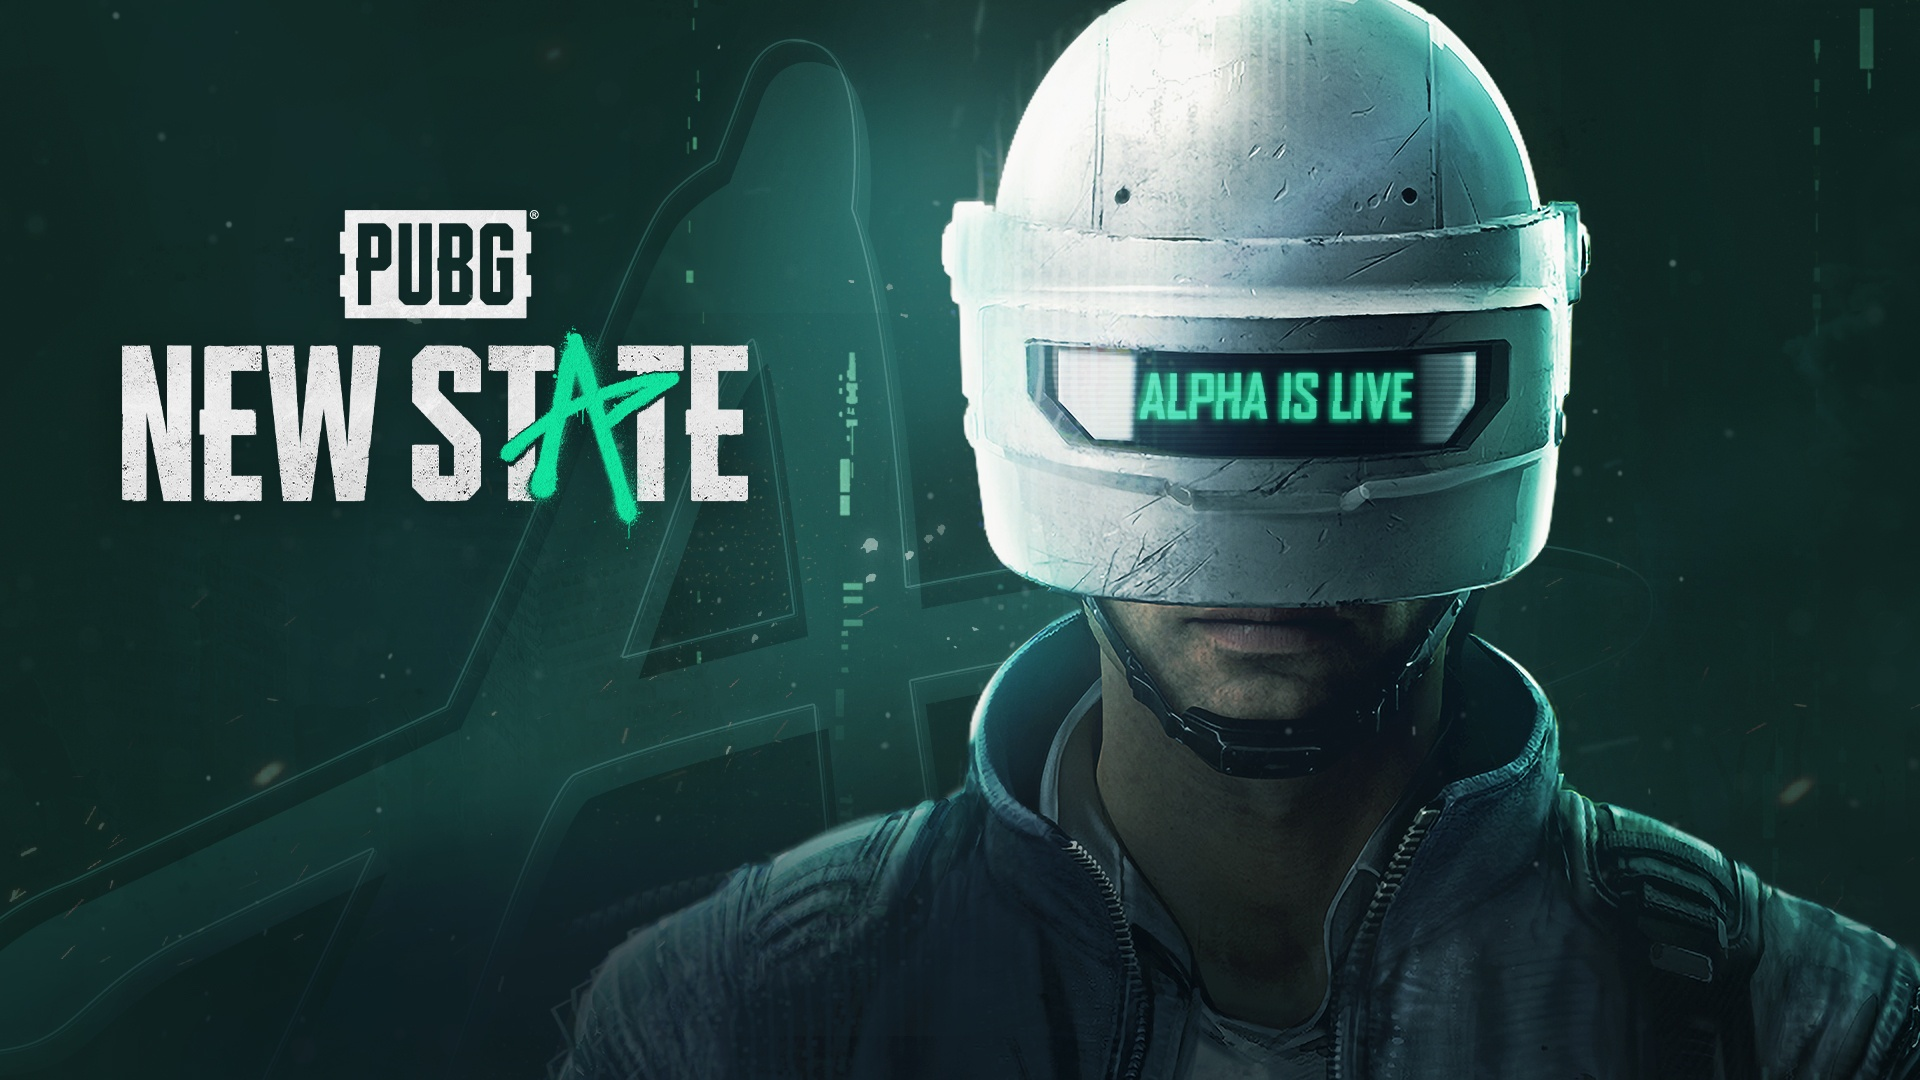 PUBG: NEW STATE App Store Pre-Orders coming August as Google Play hits 20 million Pre-Registrations